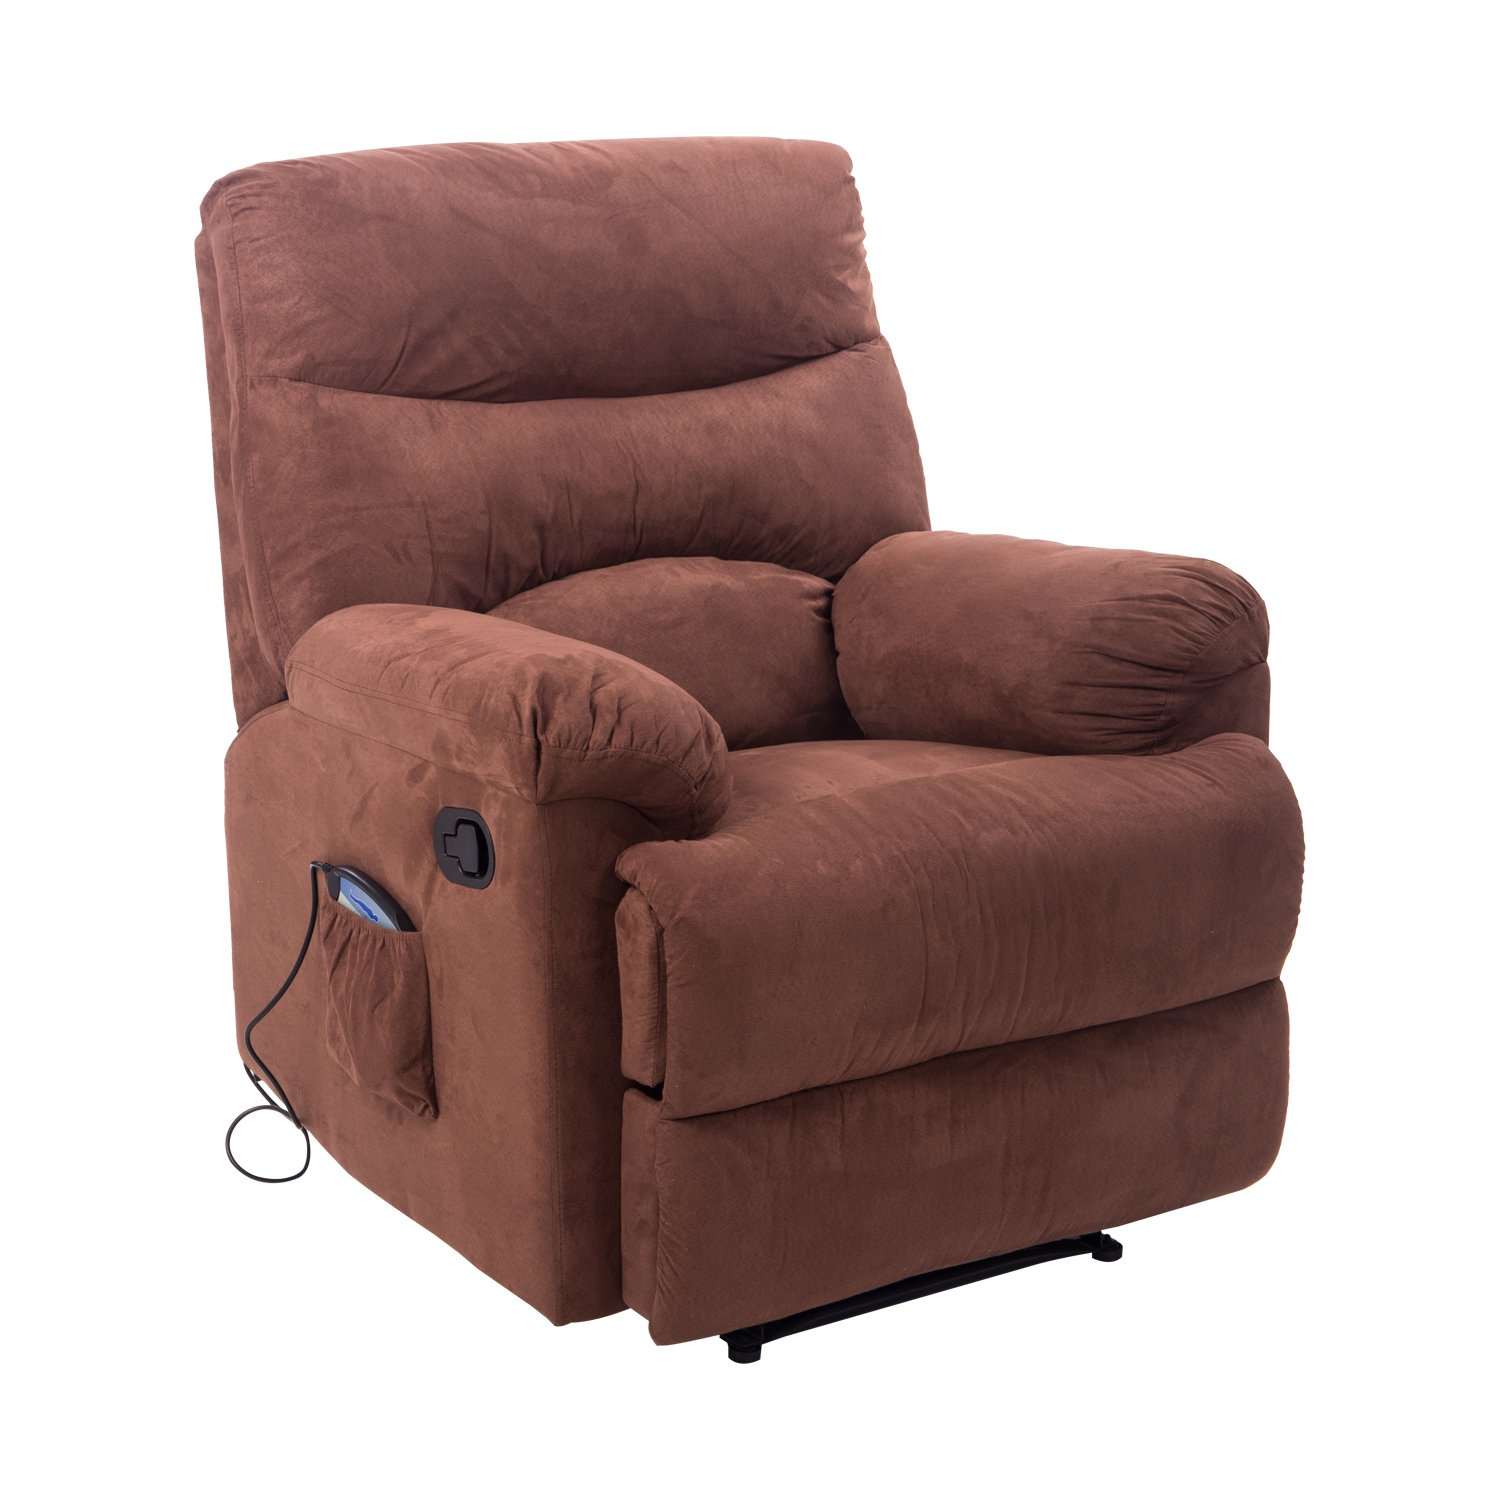 chairs recliners furniture buy affordable manufacturing free cheap room get living bogo wine tahoe recliner chair co one